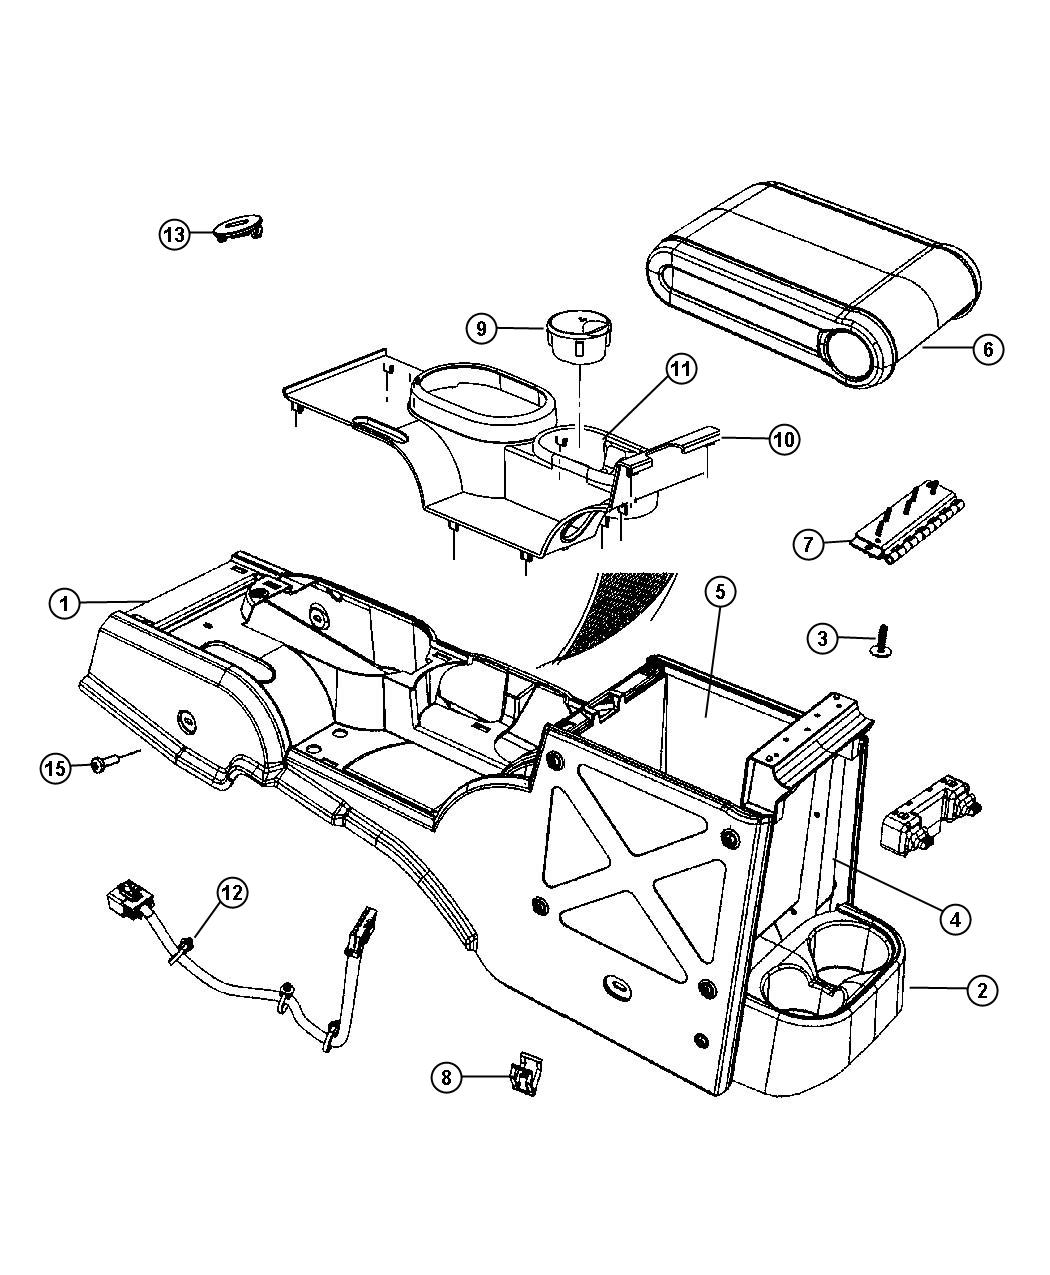 Jeep Wrangler Wiring. Console. Automatic transmission